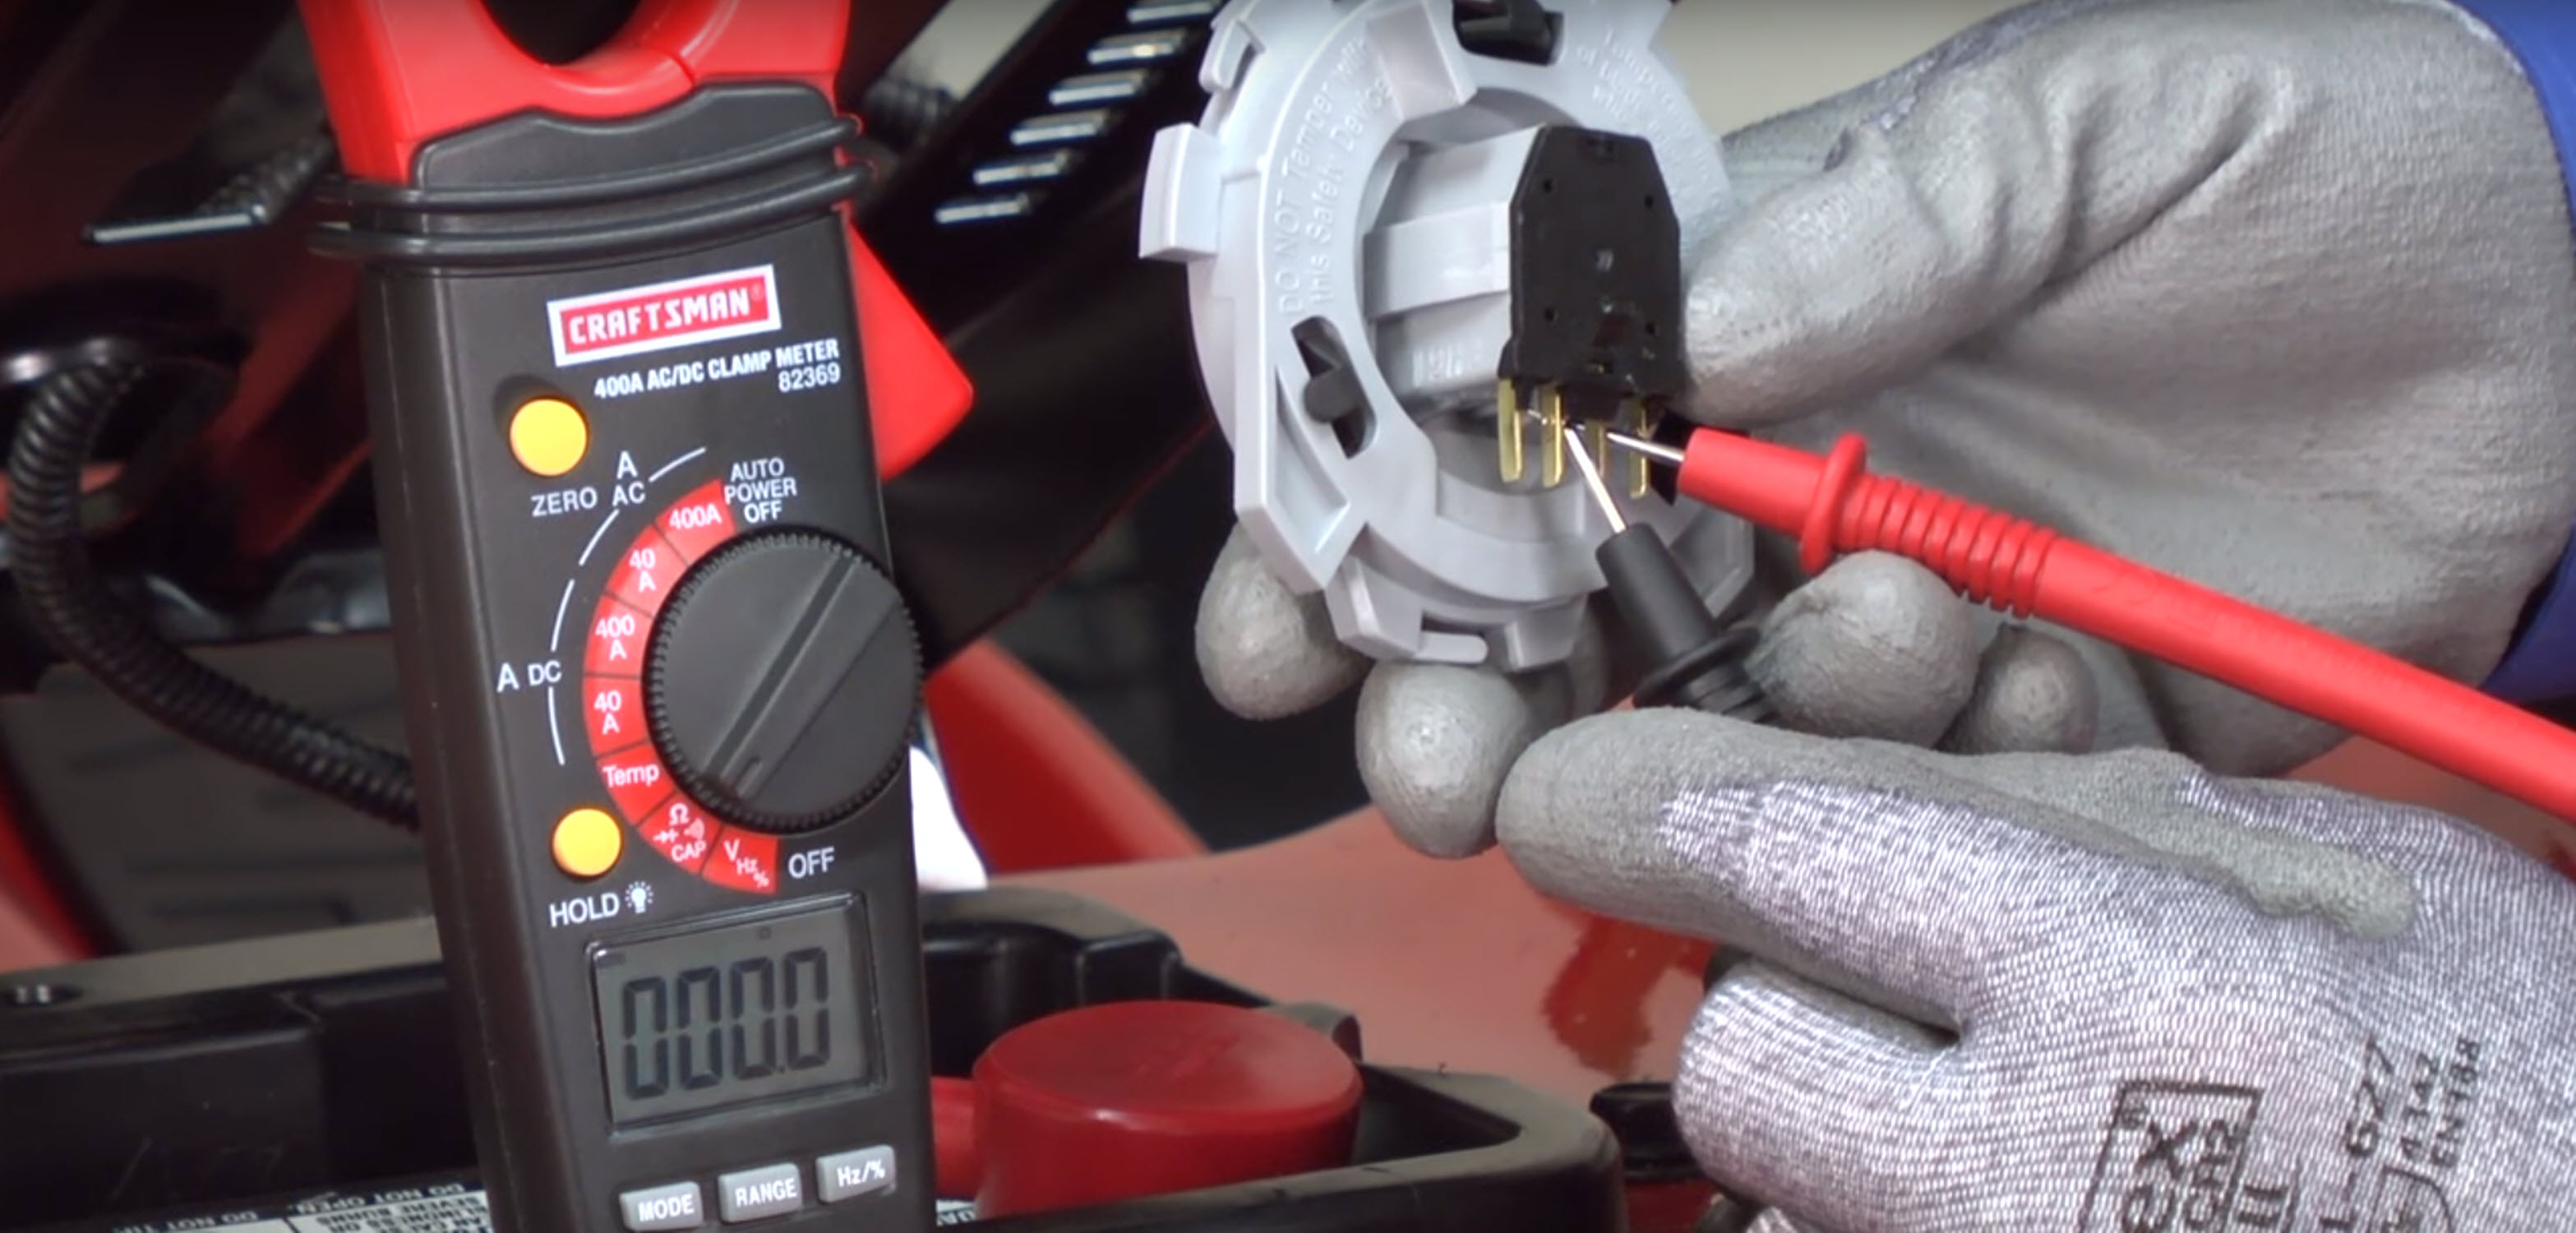 How to replace the brake interlock switch on a riding lawn